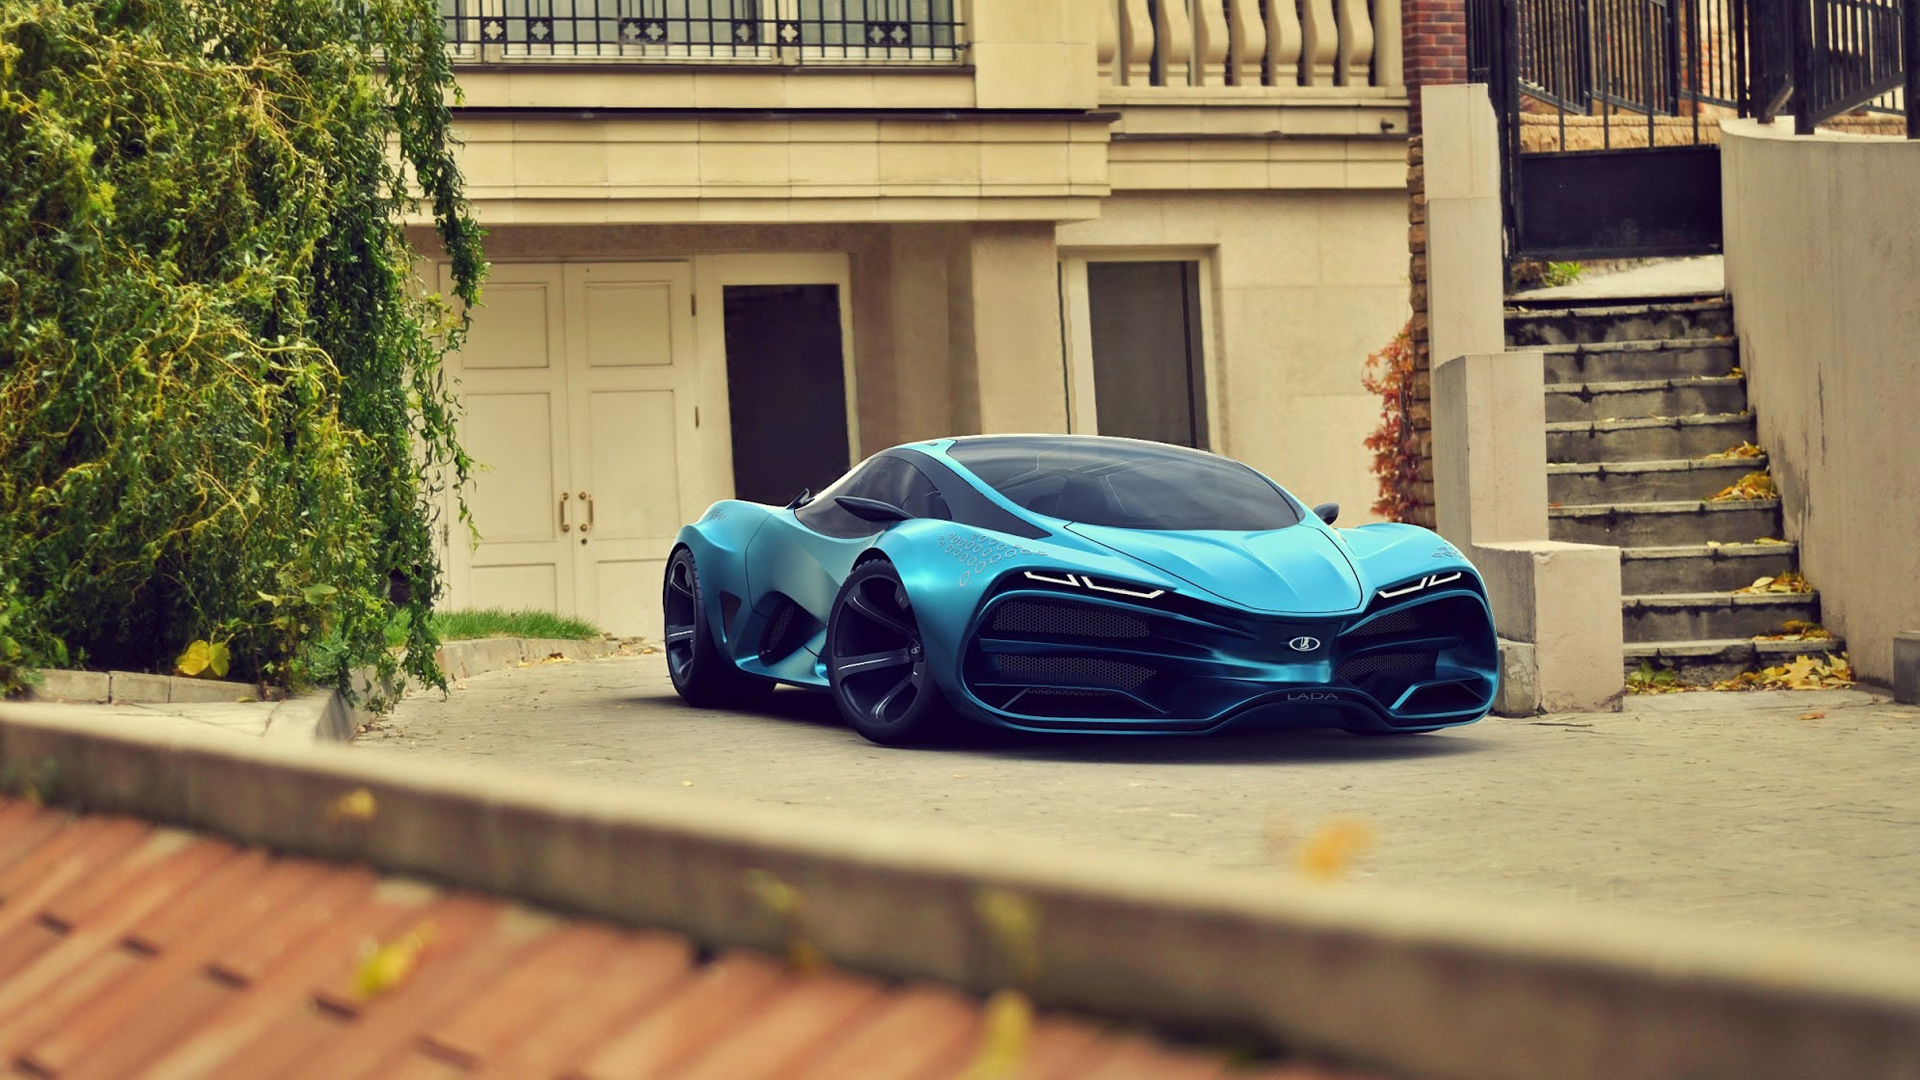 2015 lada raven supercar concept 3 wallpaper | hd car wallpapers